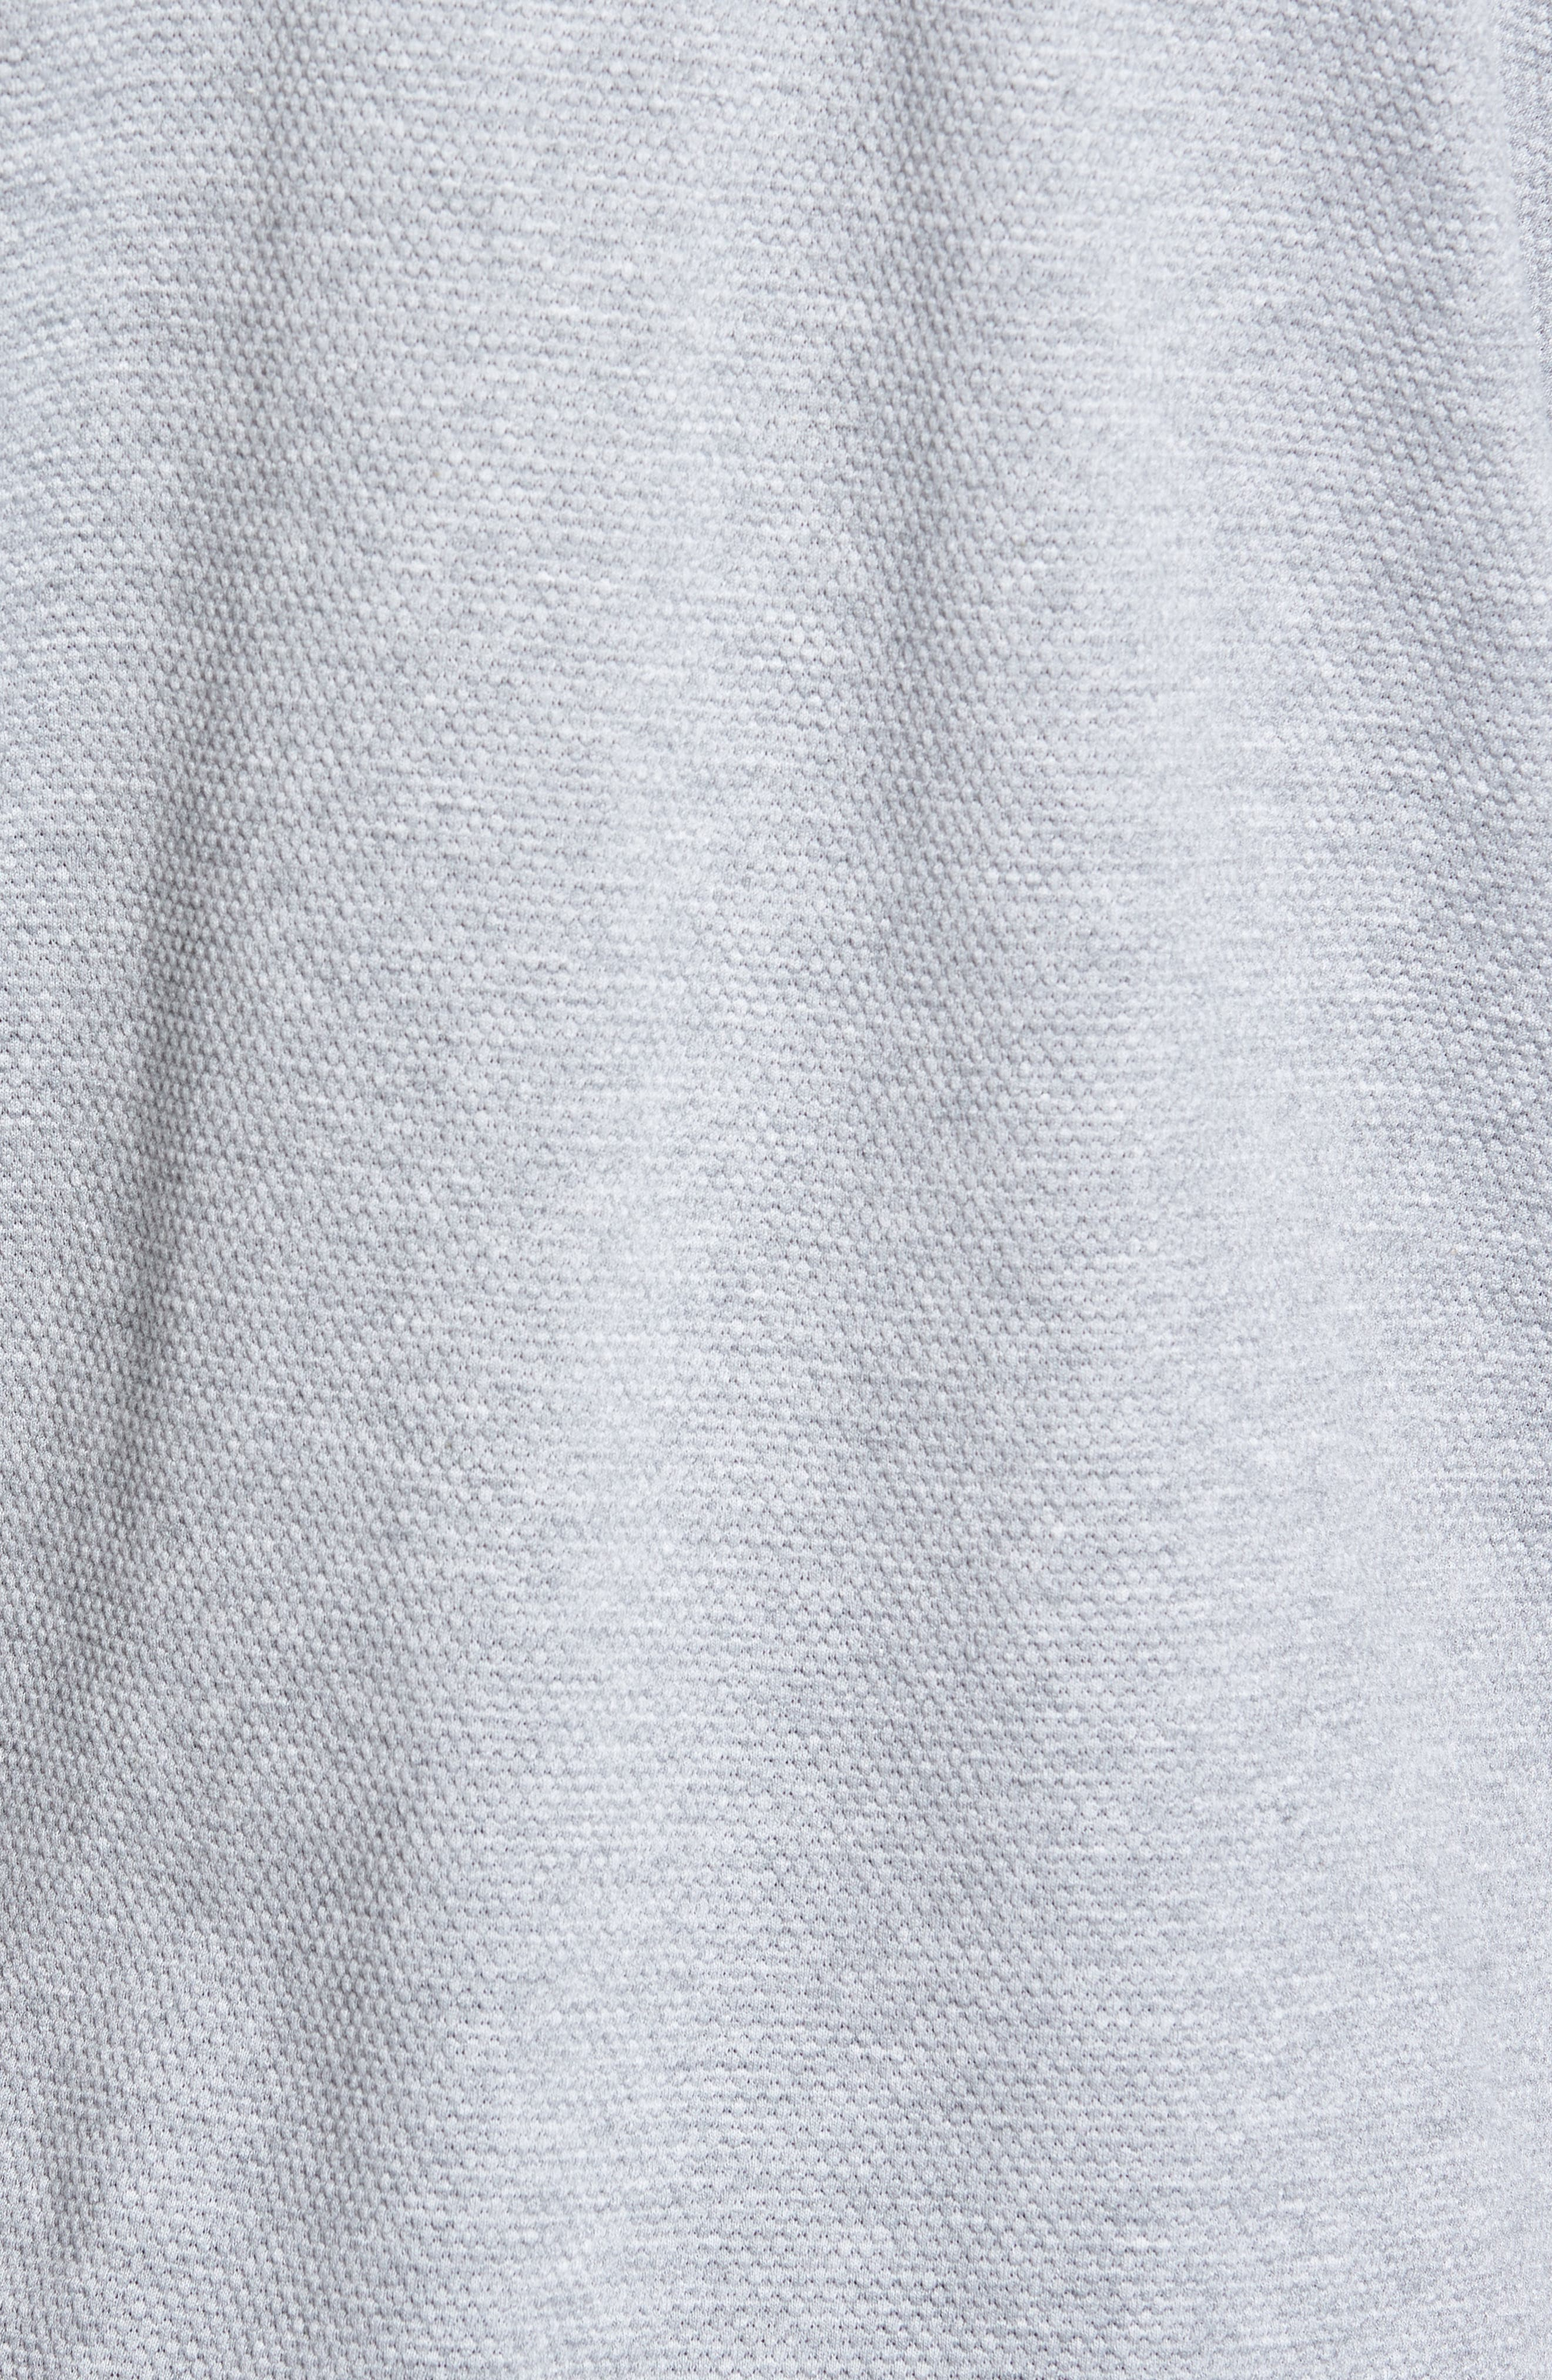 Scooby Trim Fit Long Sleeve Polo Shirt,                             Alternate thumbnail 5, color,                             Grey Marl